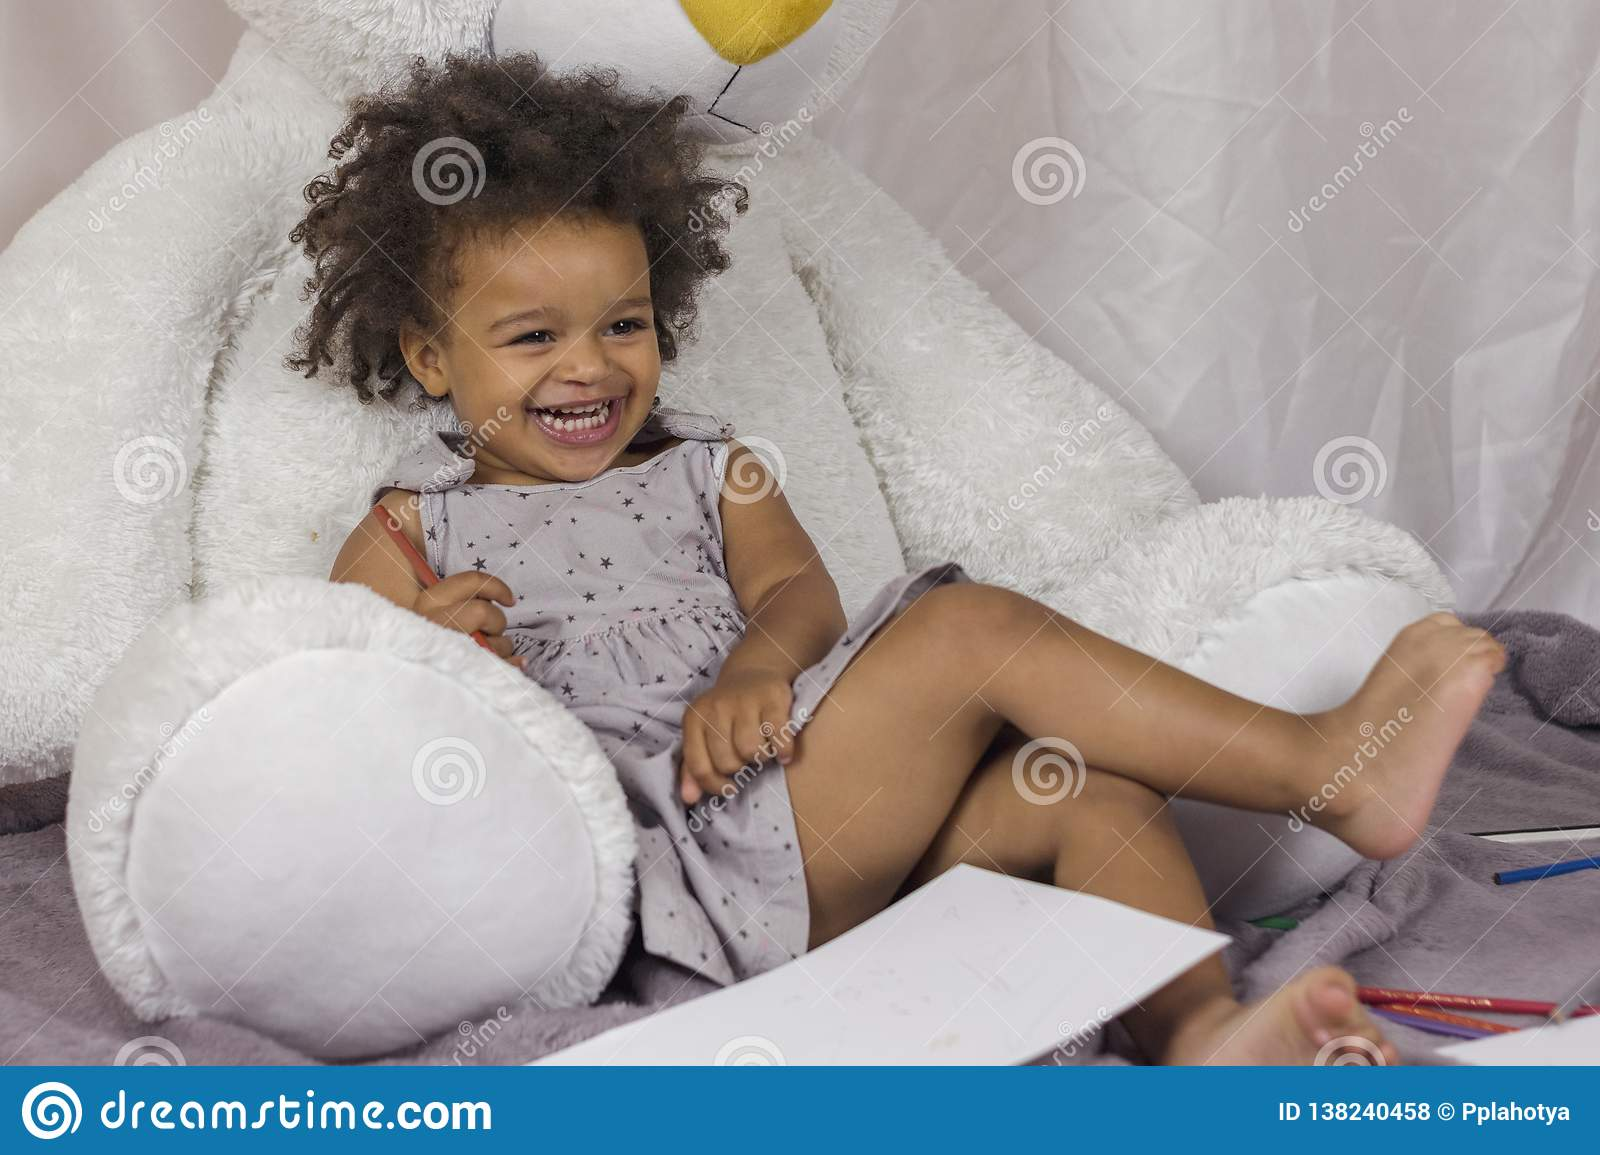 ae15f9154e4 Cute little african american girl laying on big white teddy bear and  laughing